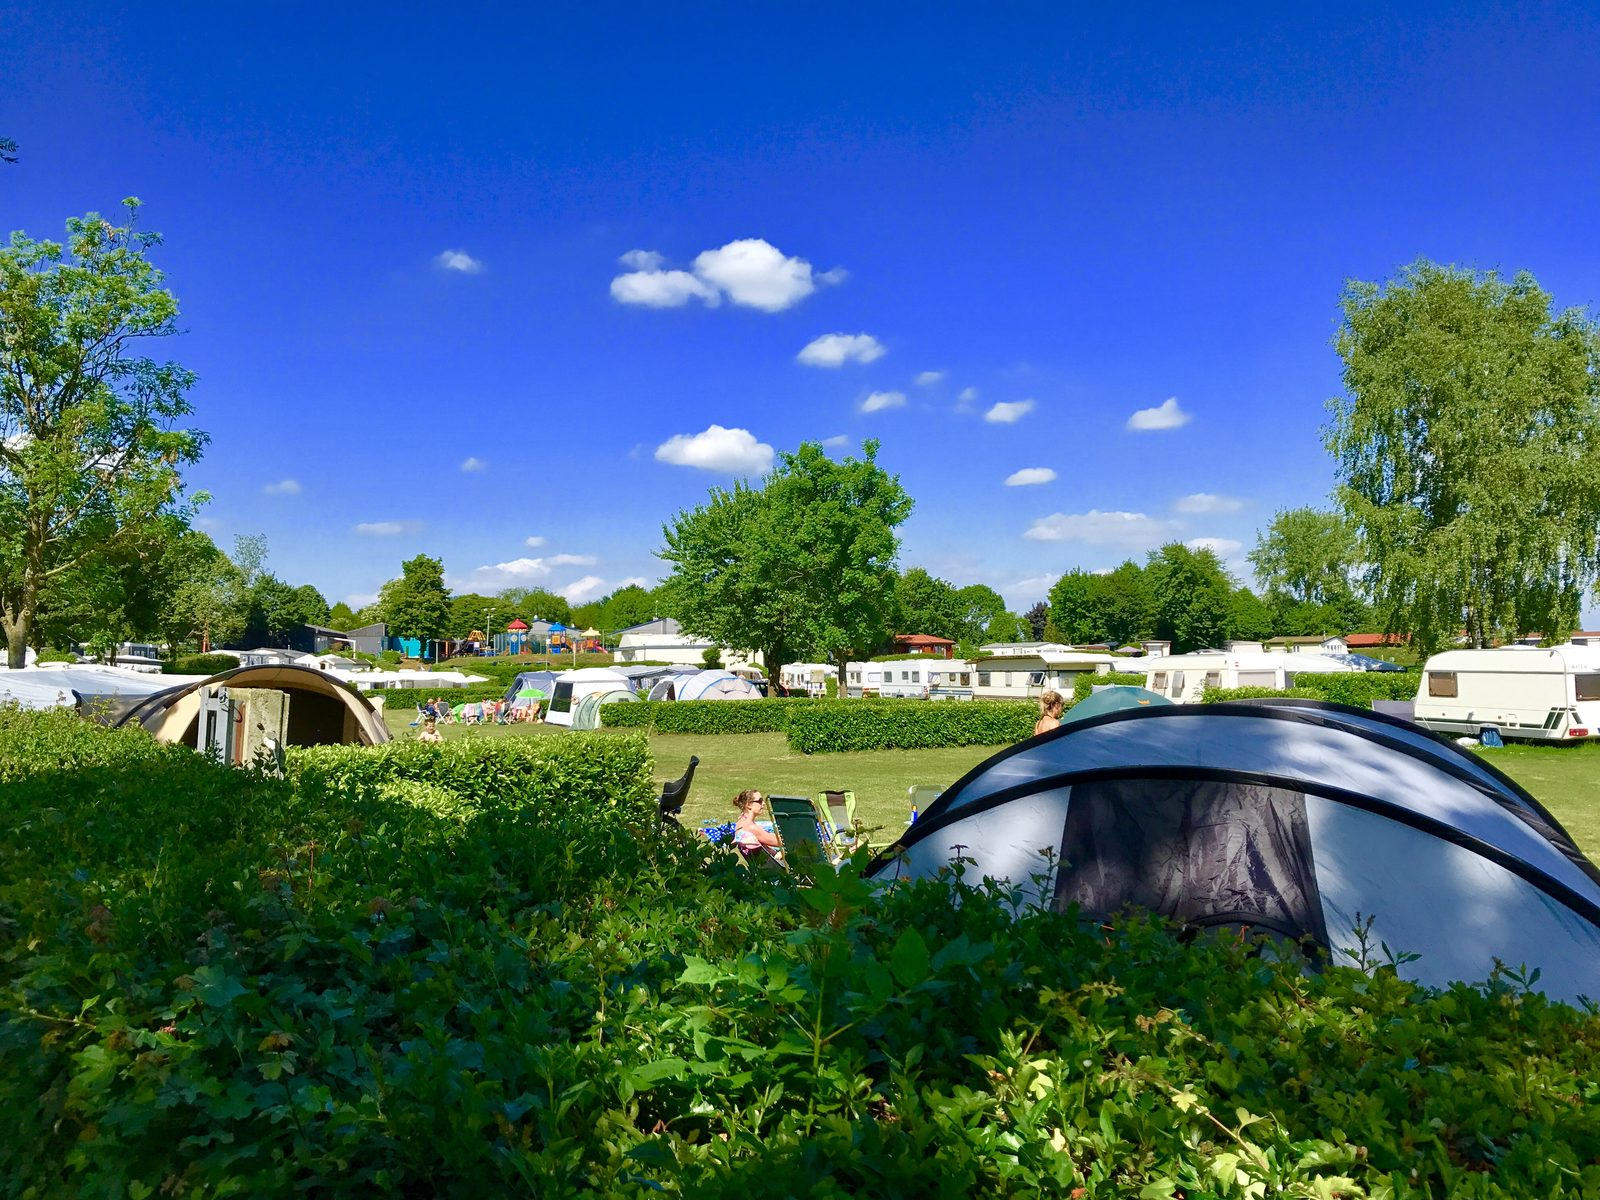 Campsites in the Netherlands